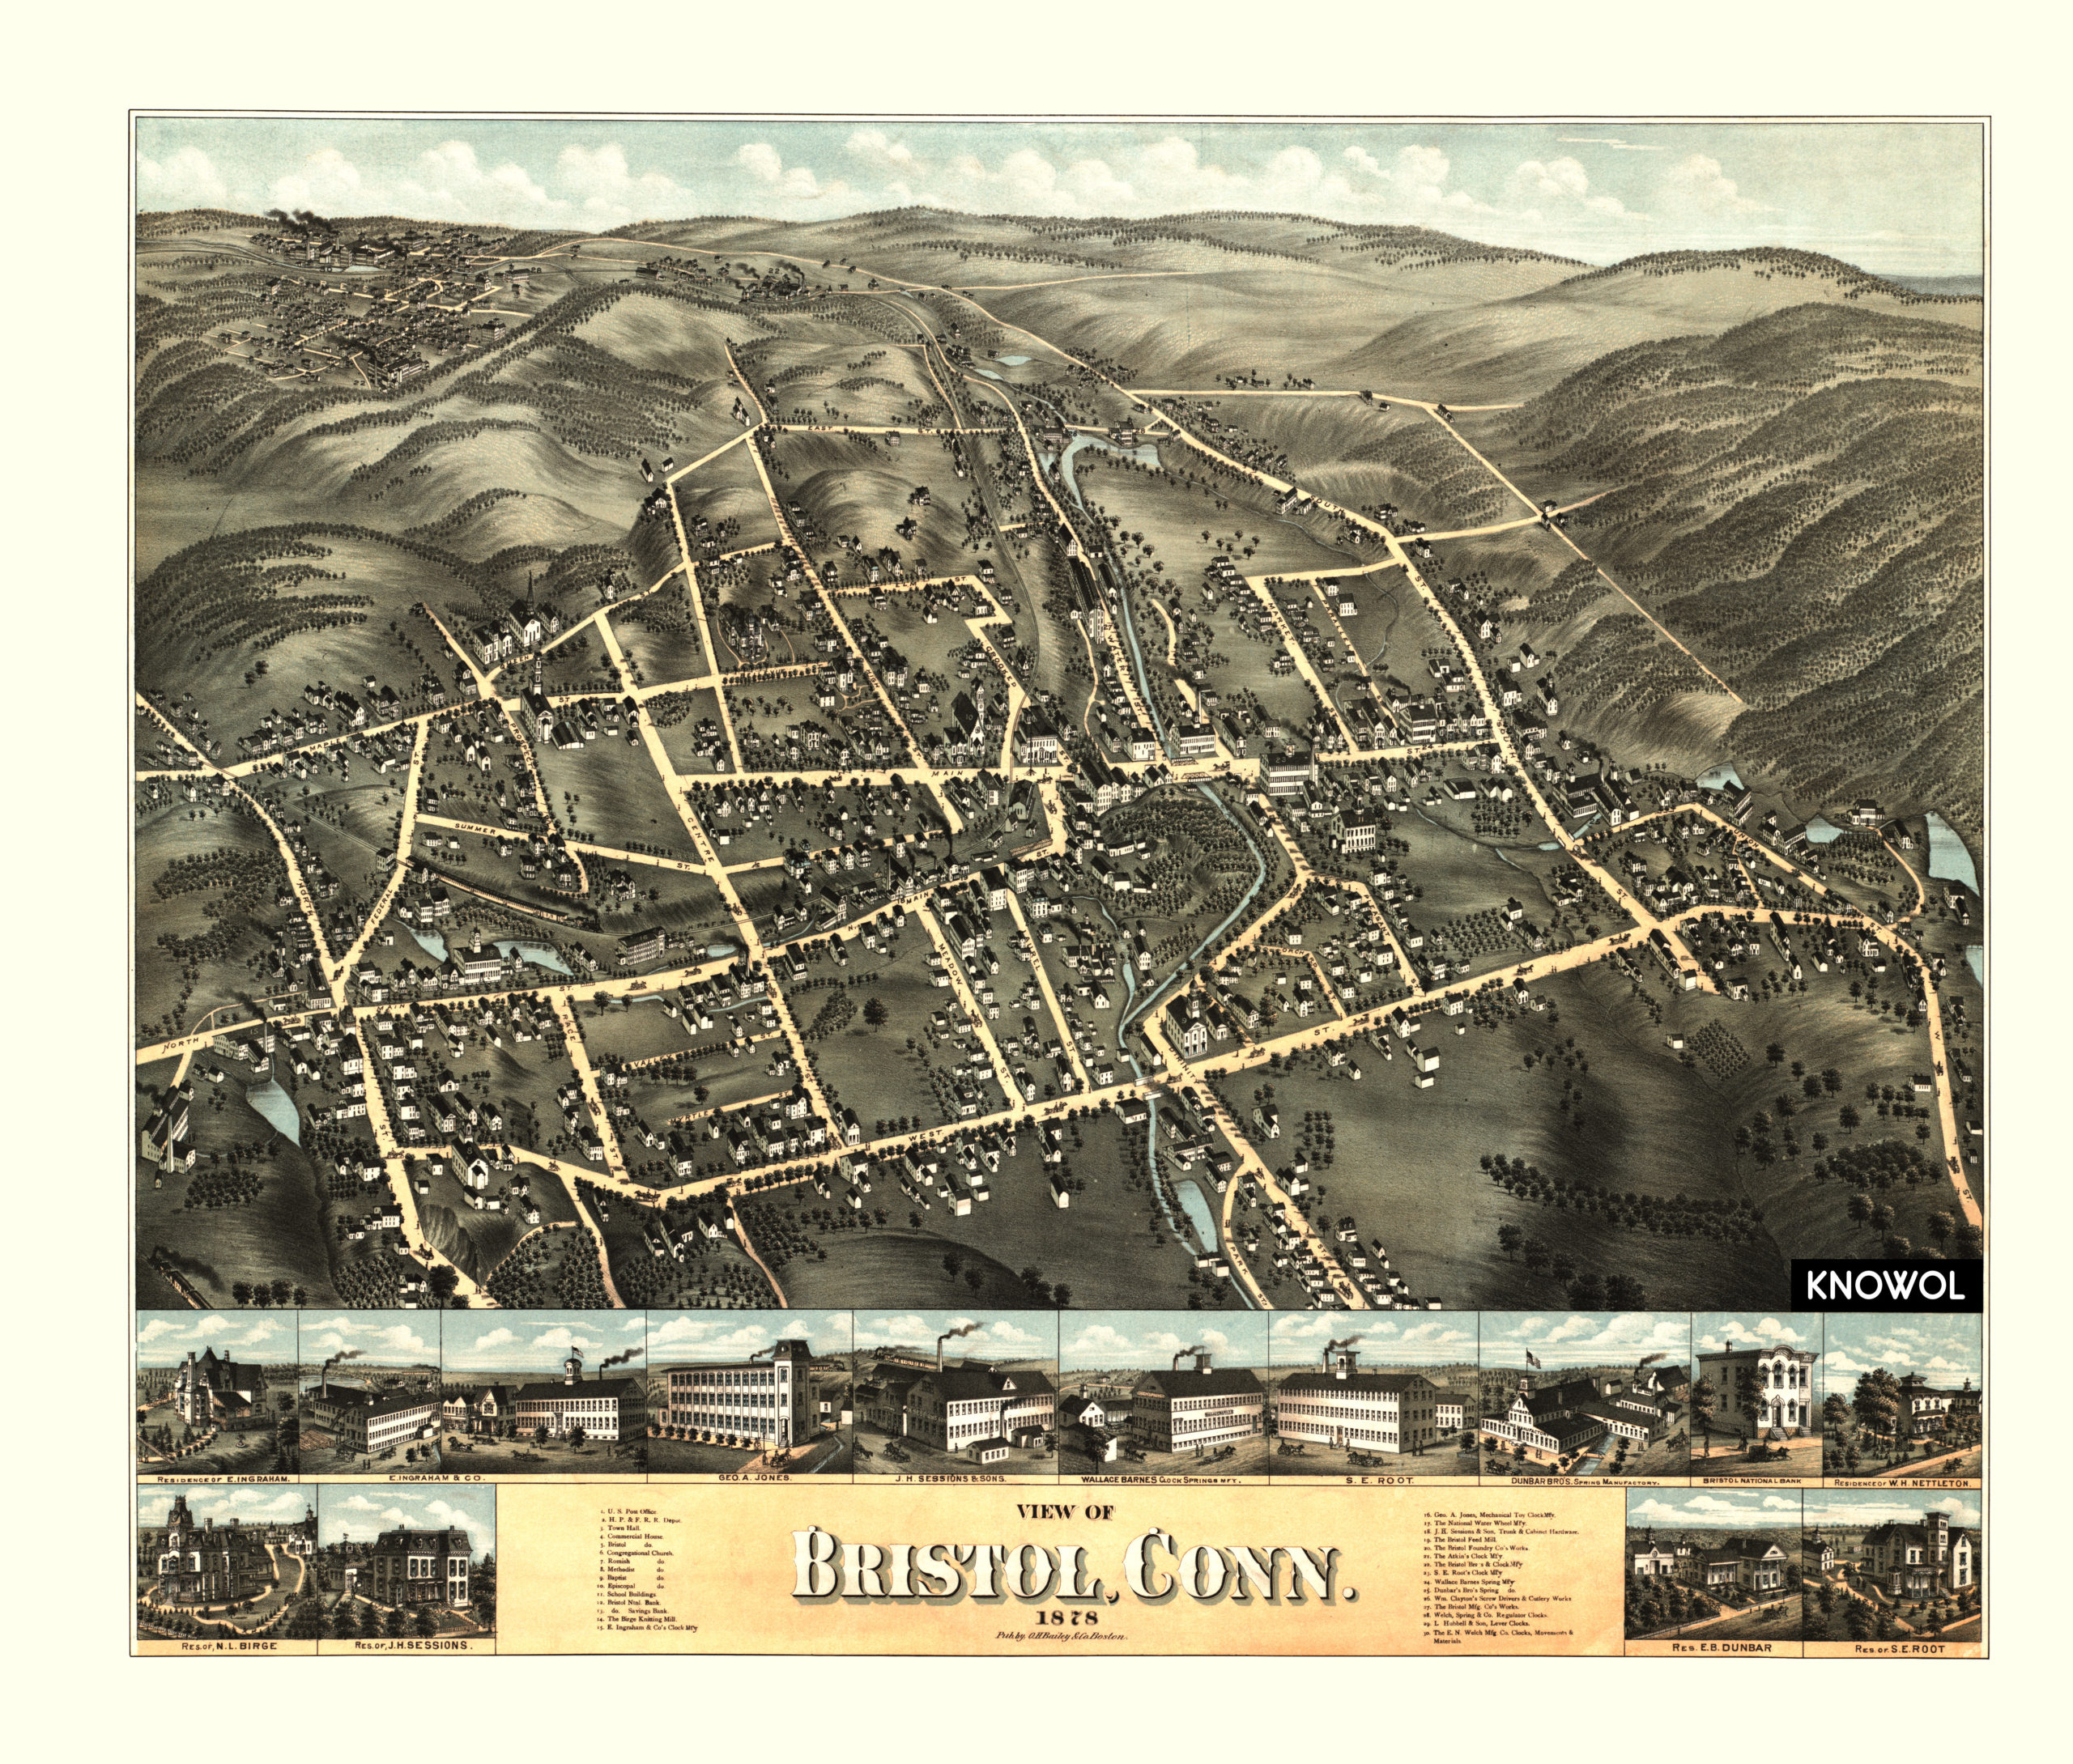 Beautiful old map of Bristol, Connecticut from 1878 - KNOWOL